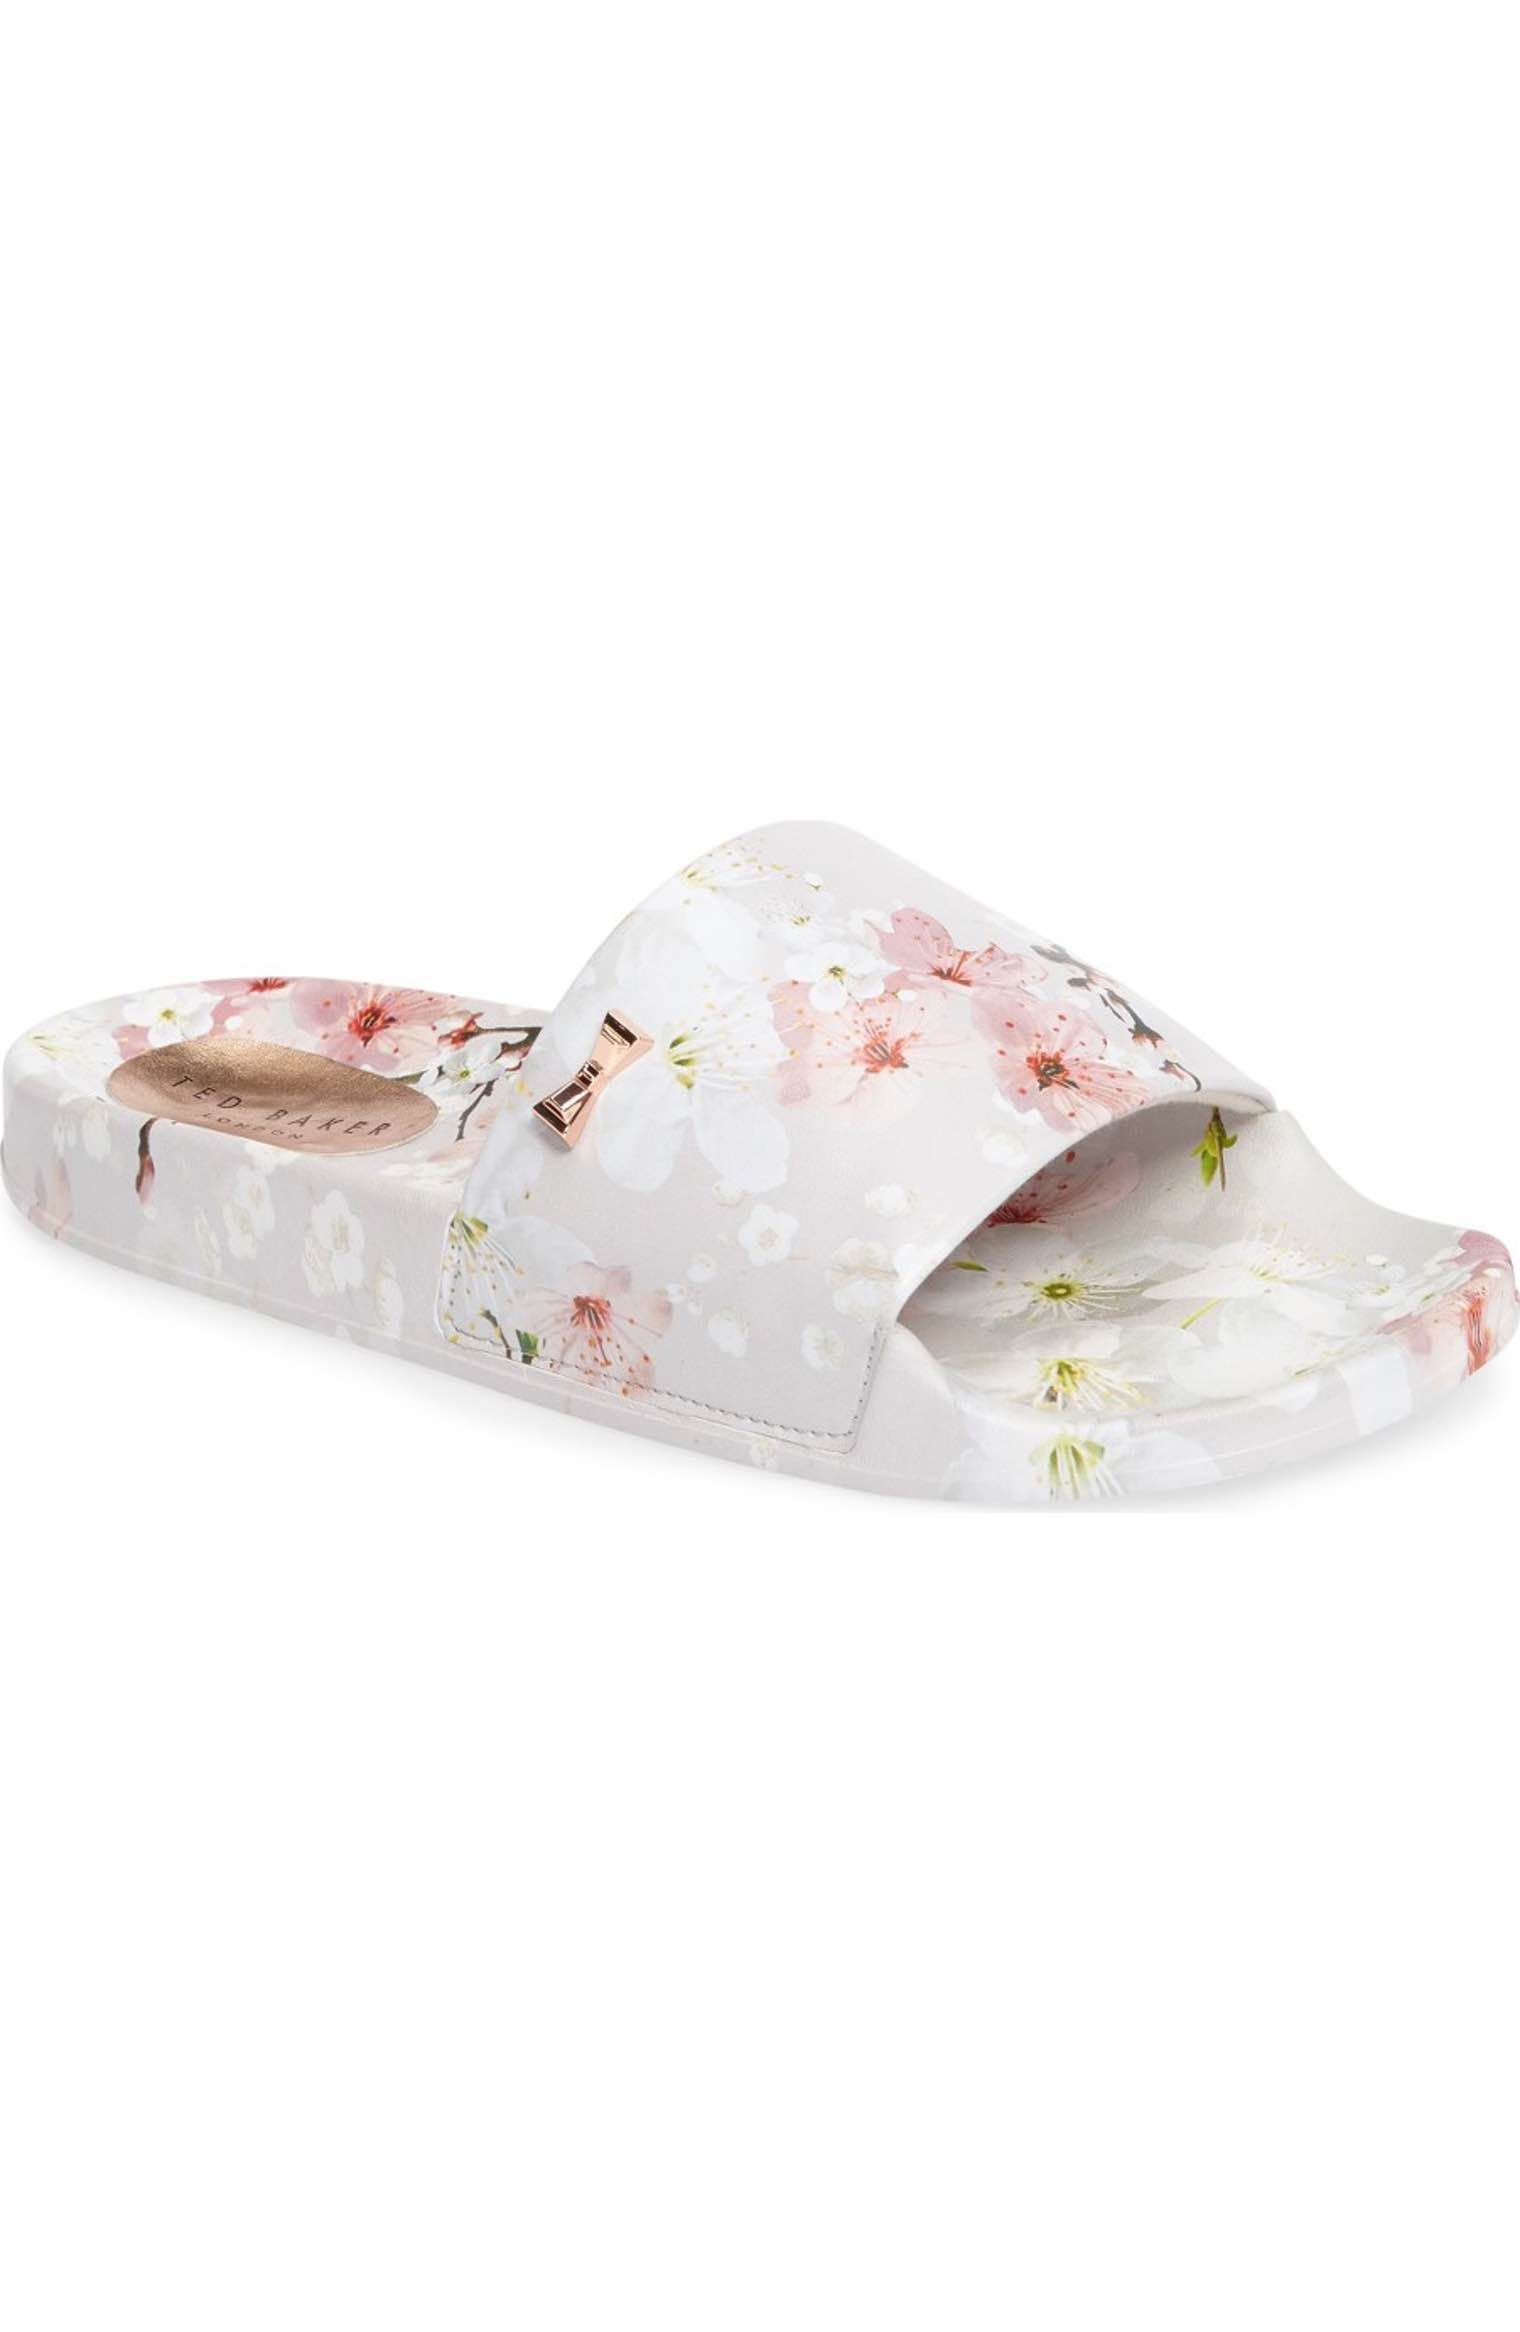 7136d7f5e Main Image - Ted Baker London Armeana Slide Sandal (Women) Cherry Blossom  Shoes!